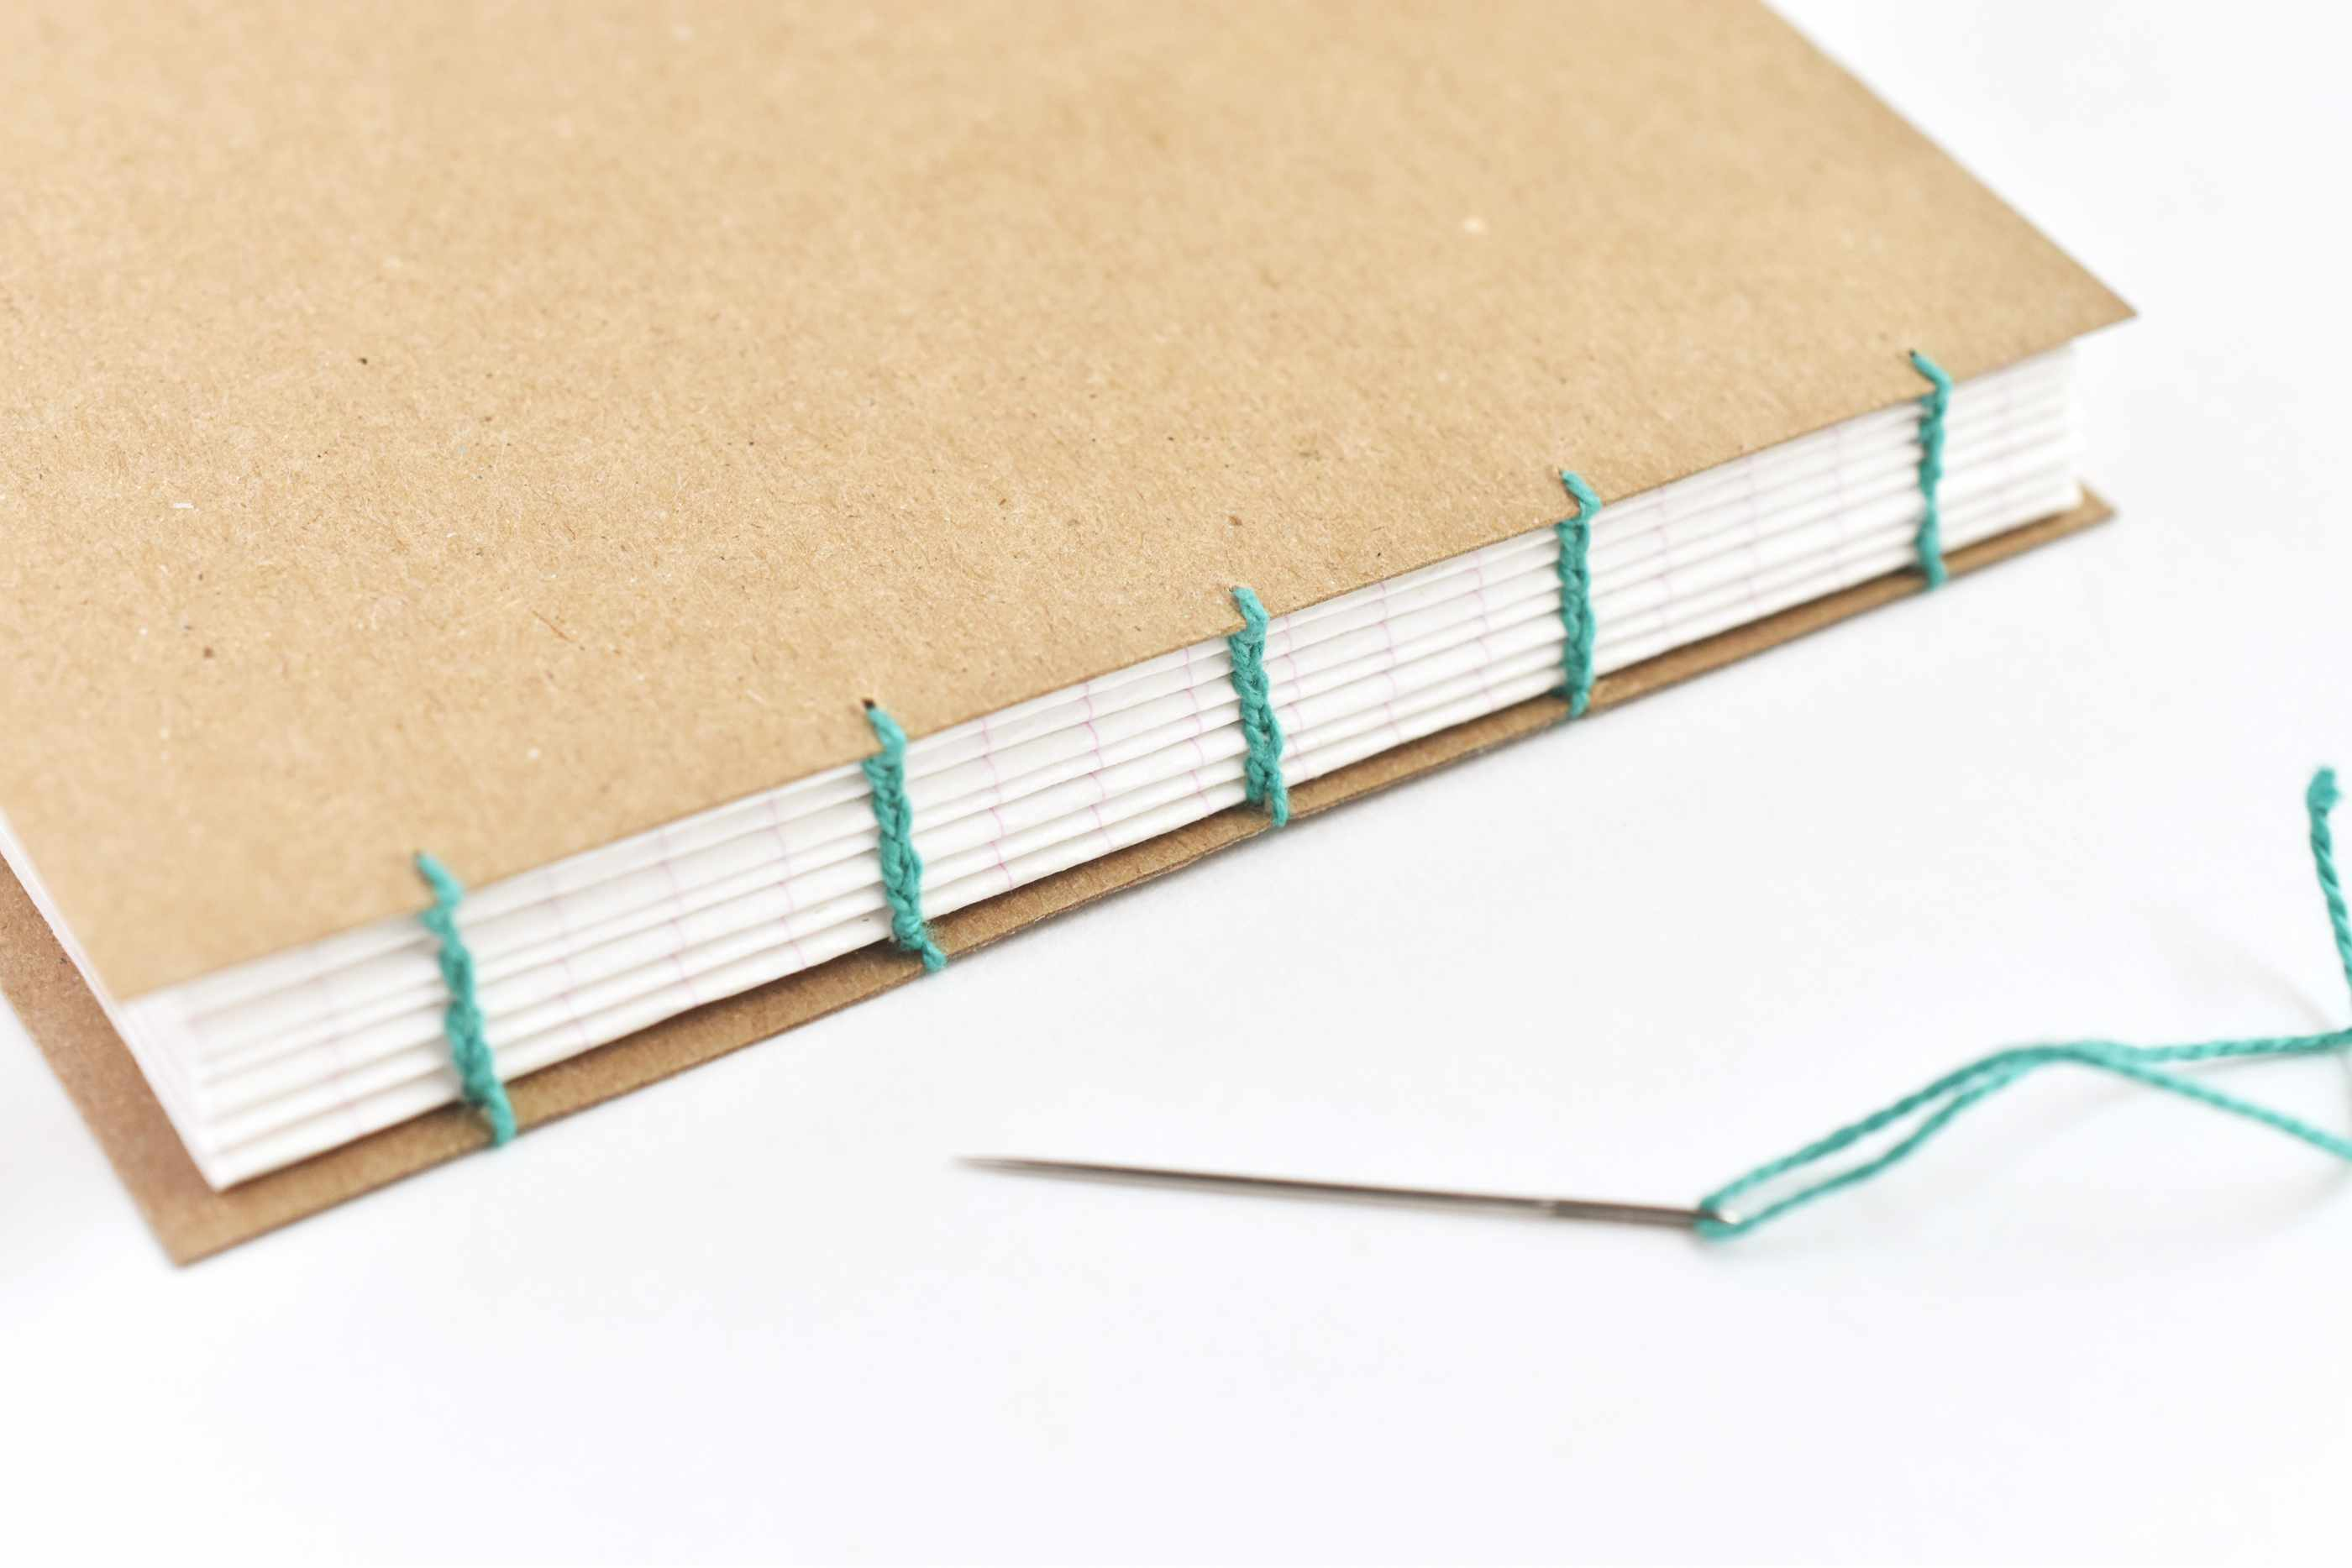 How to Bind a Book With Coptic Stitch